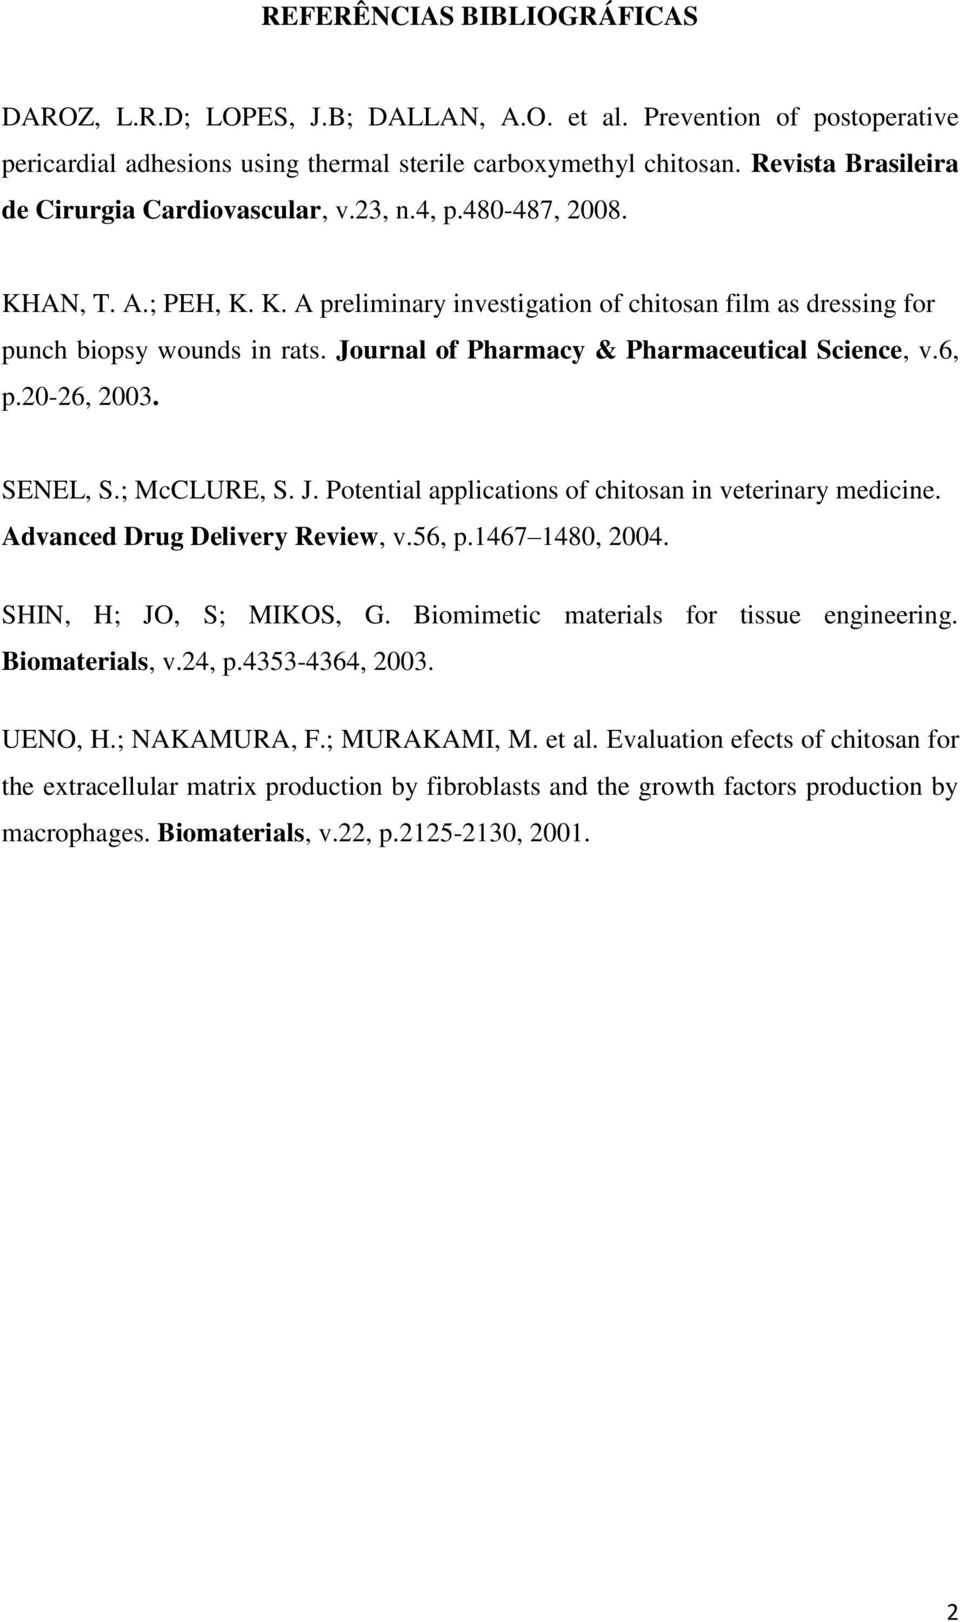 Journal of Pharmacy & Pharmaceutical Science, v.6, p.20-26, 2003. SENEL, S.; McCLURE, S. J. Potential applications of chitosan in veterinary medicine. Advanced Drug Delivery Review, v.56, p.